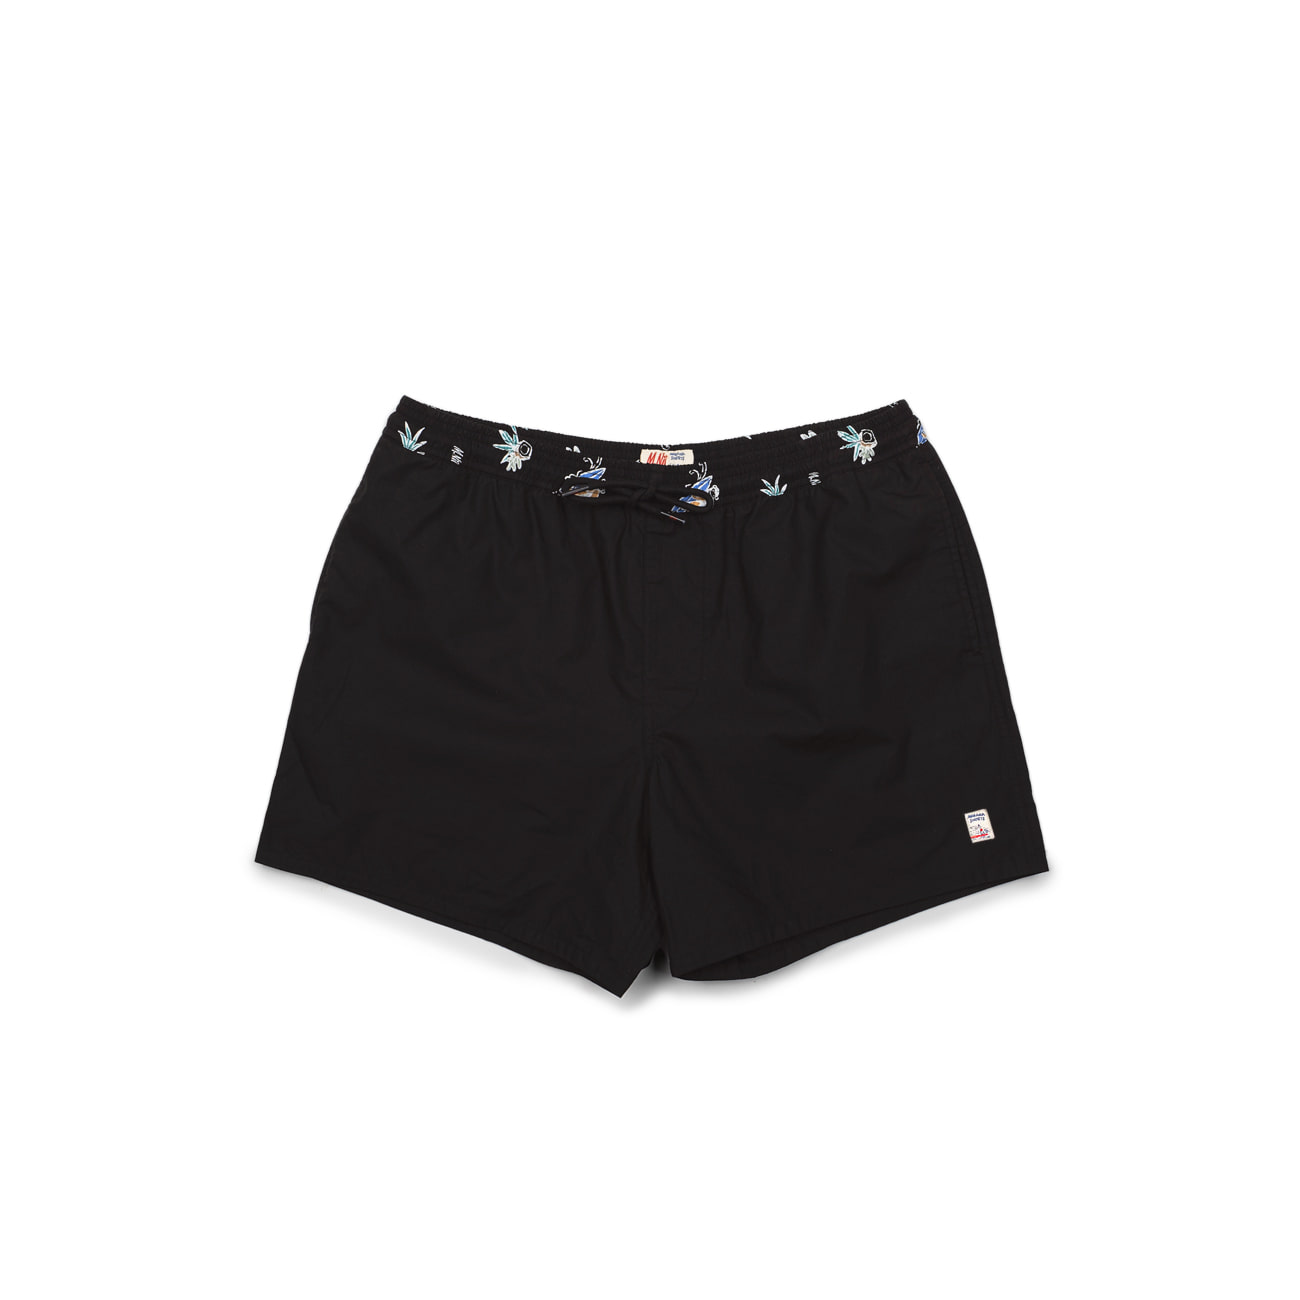 Basic Monkey Surf Shorts